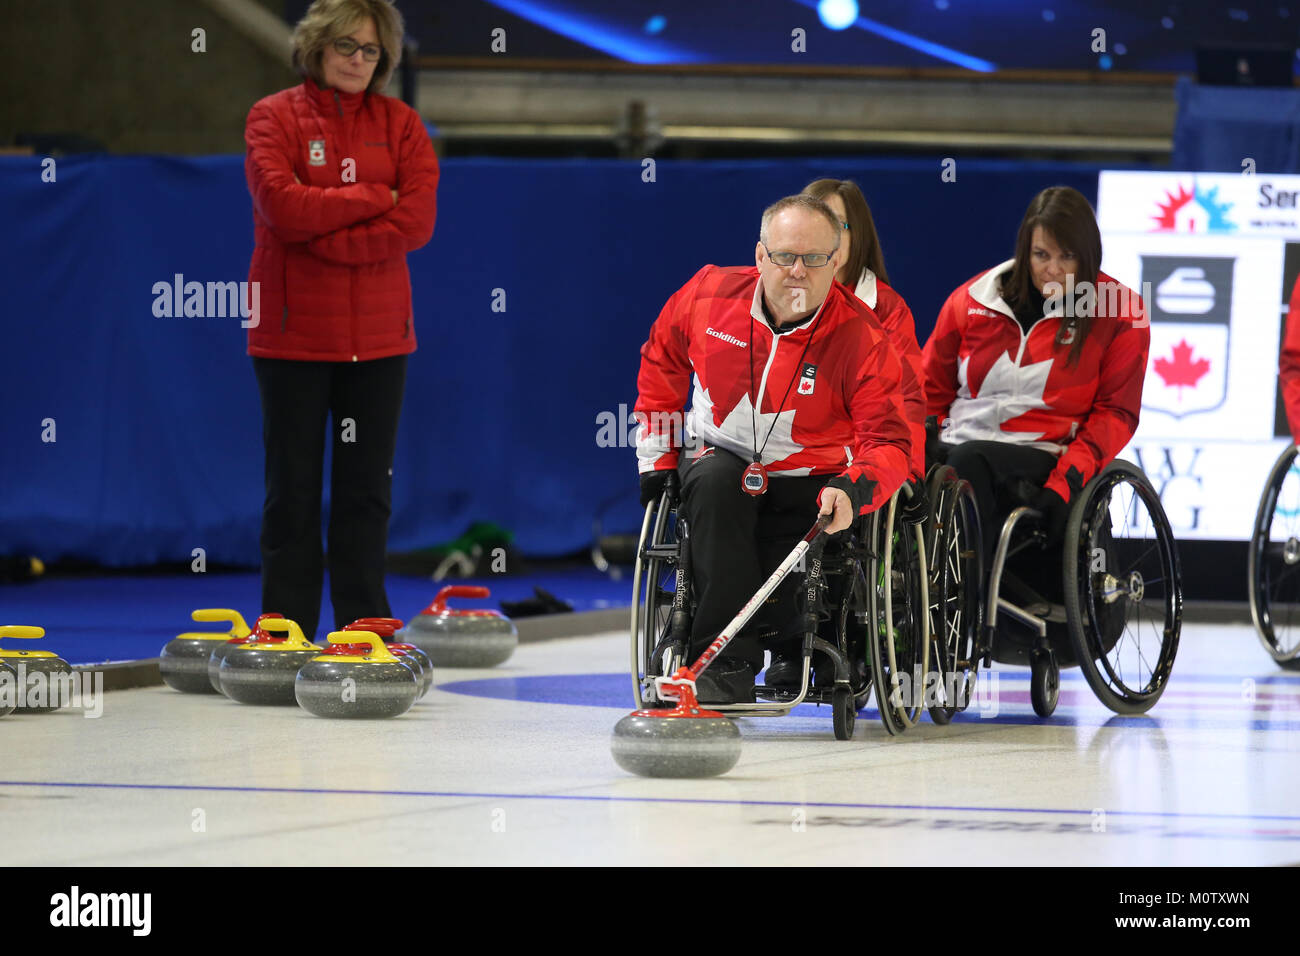 Curling Broom Stock Photos & Curling Broom Stock Images - Alamy